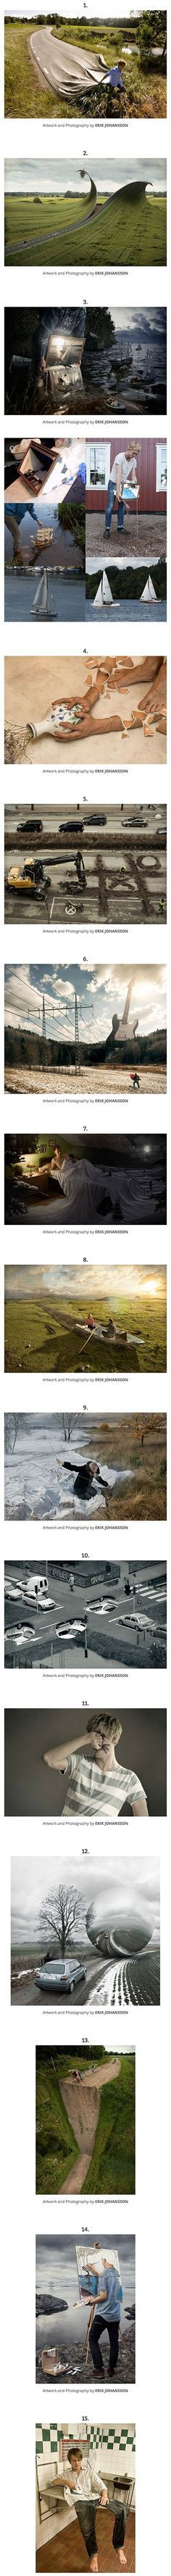 Erik Johansson is a full-time photographer and retoucher from Sweden, now based in Berlin, Germany. The wildly successful artist does both personal and commission work for big brands around the world. Here's a small sample of Erik's artwork.